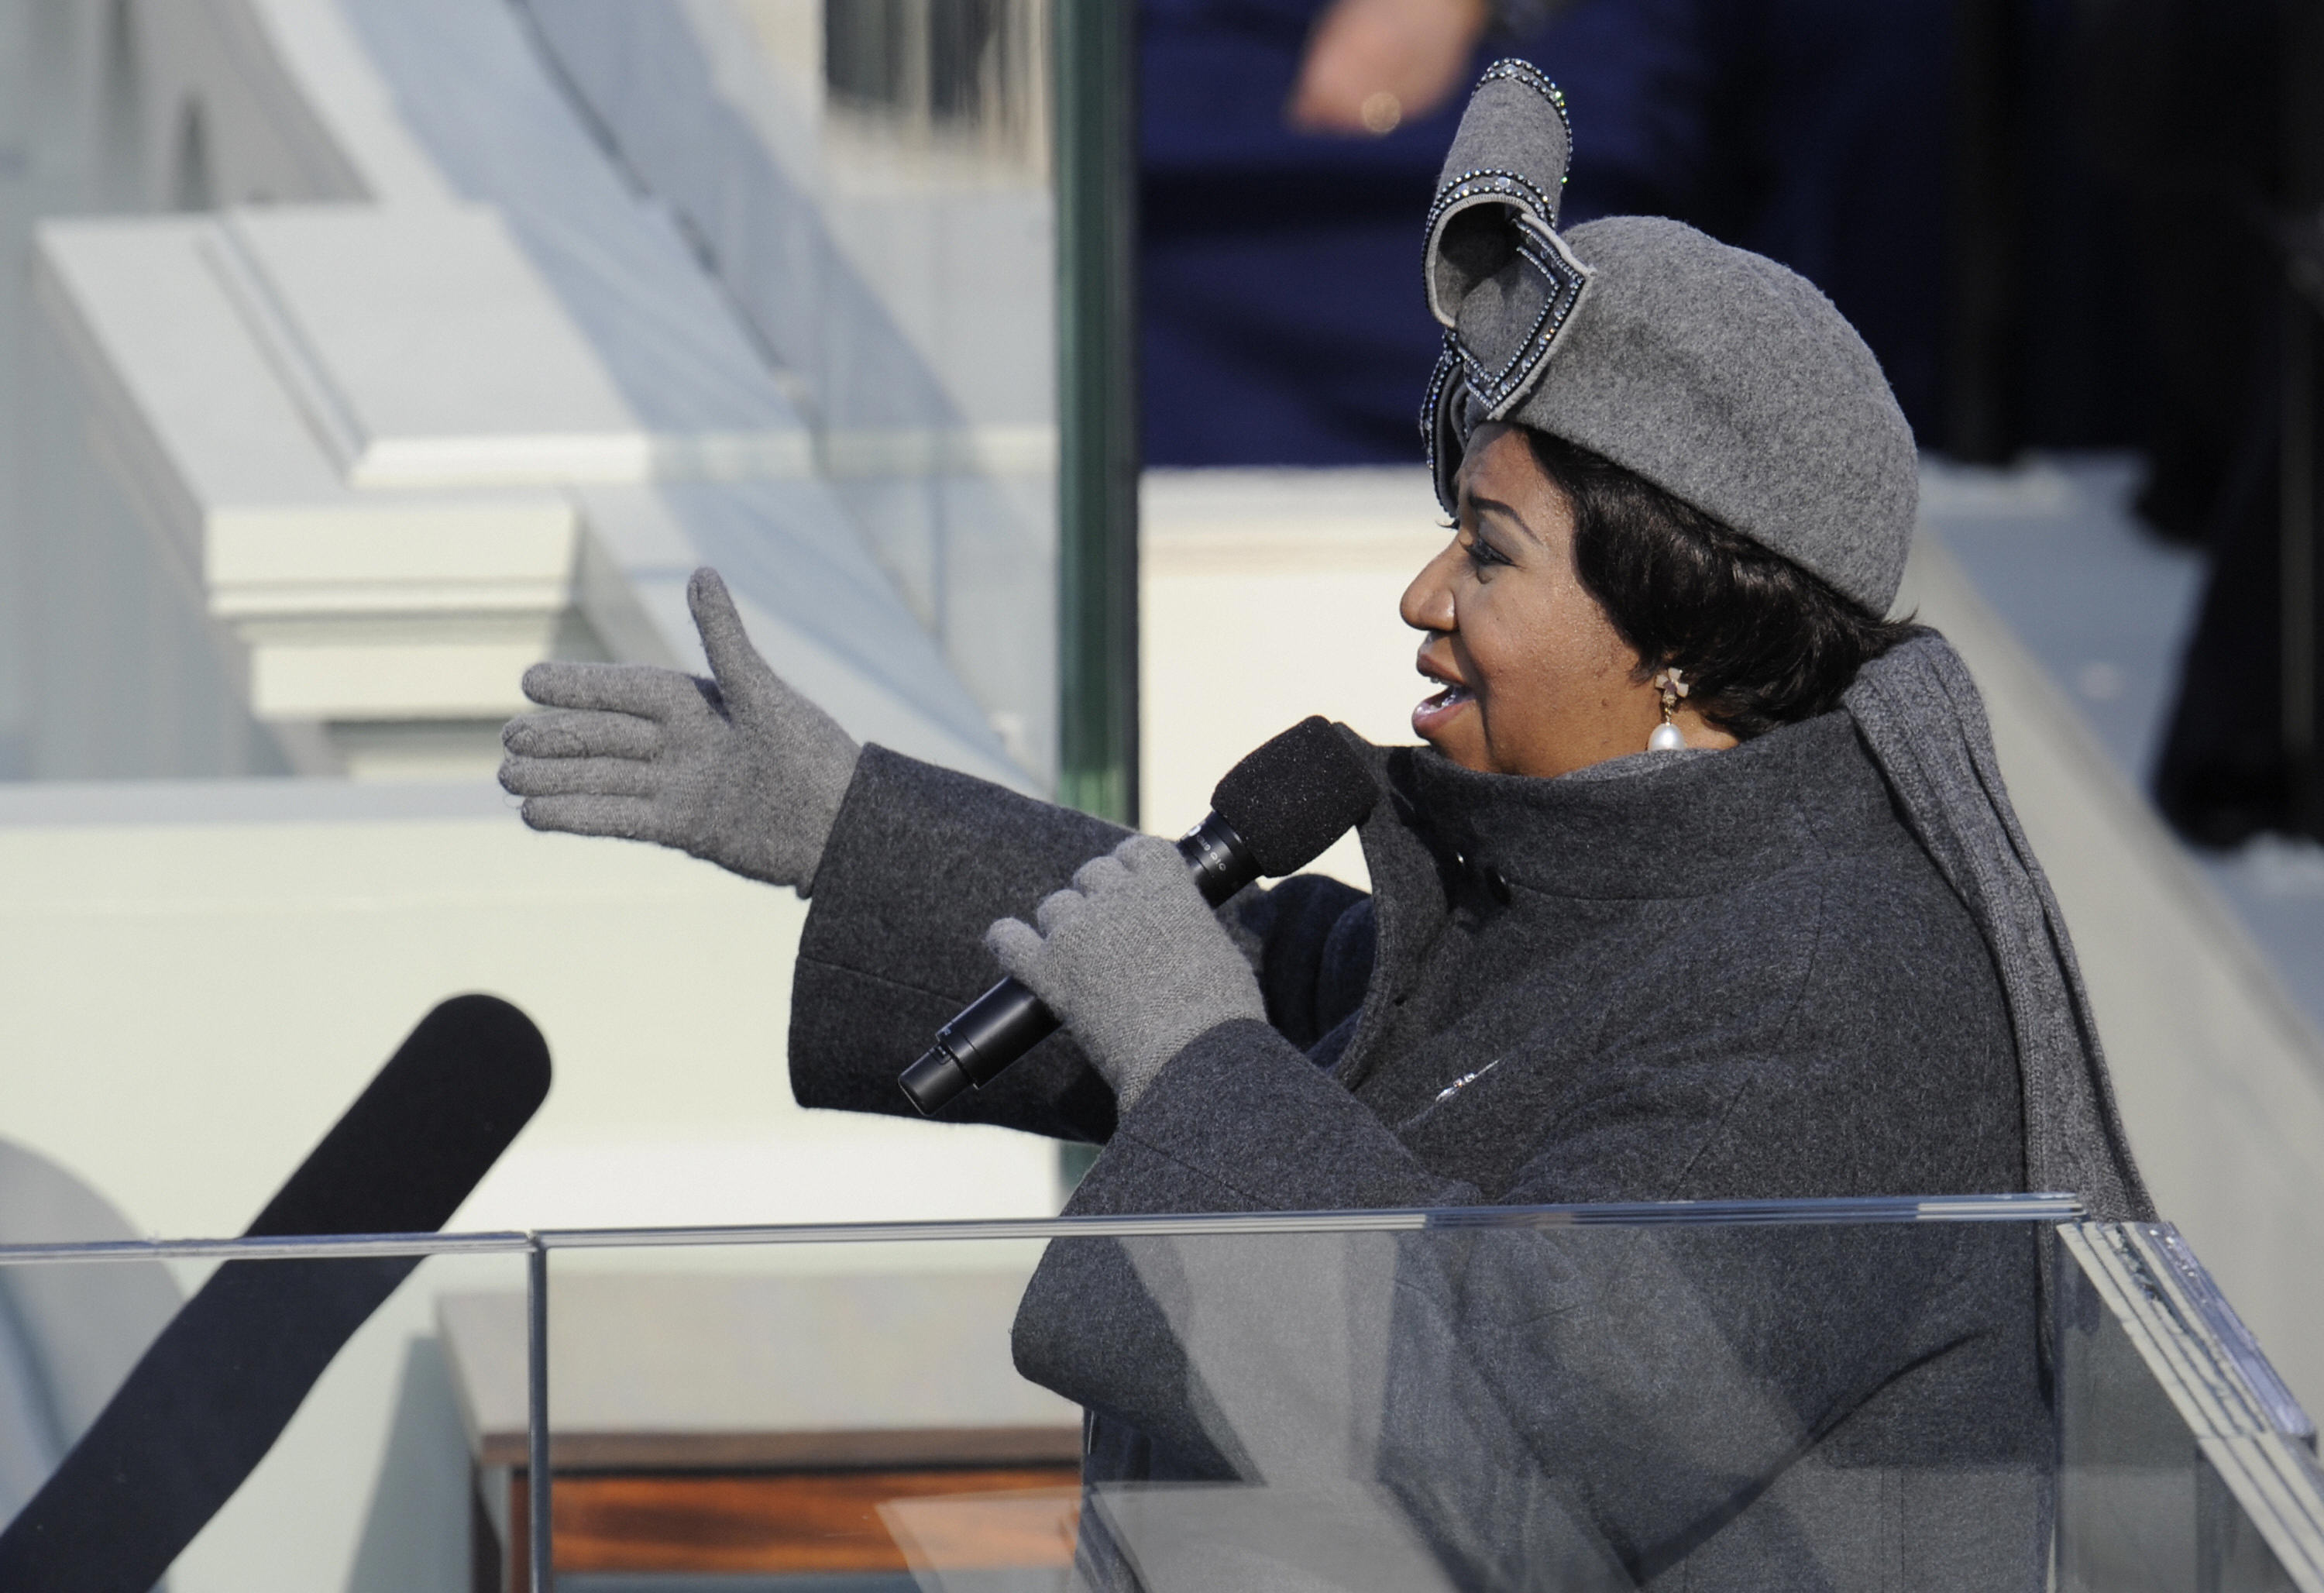 Singer Aretha Franklin performs during the inauguration of President Barack Obama at the Capitol in Washington on January 20, 2009.